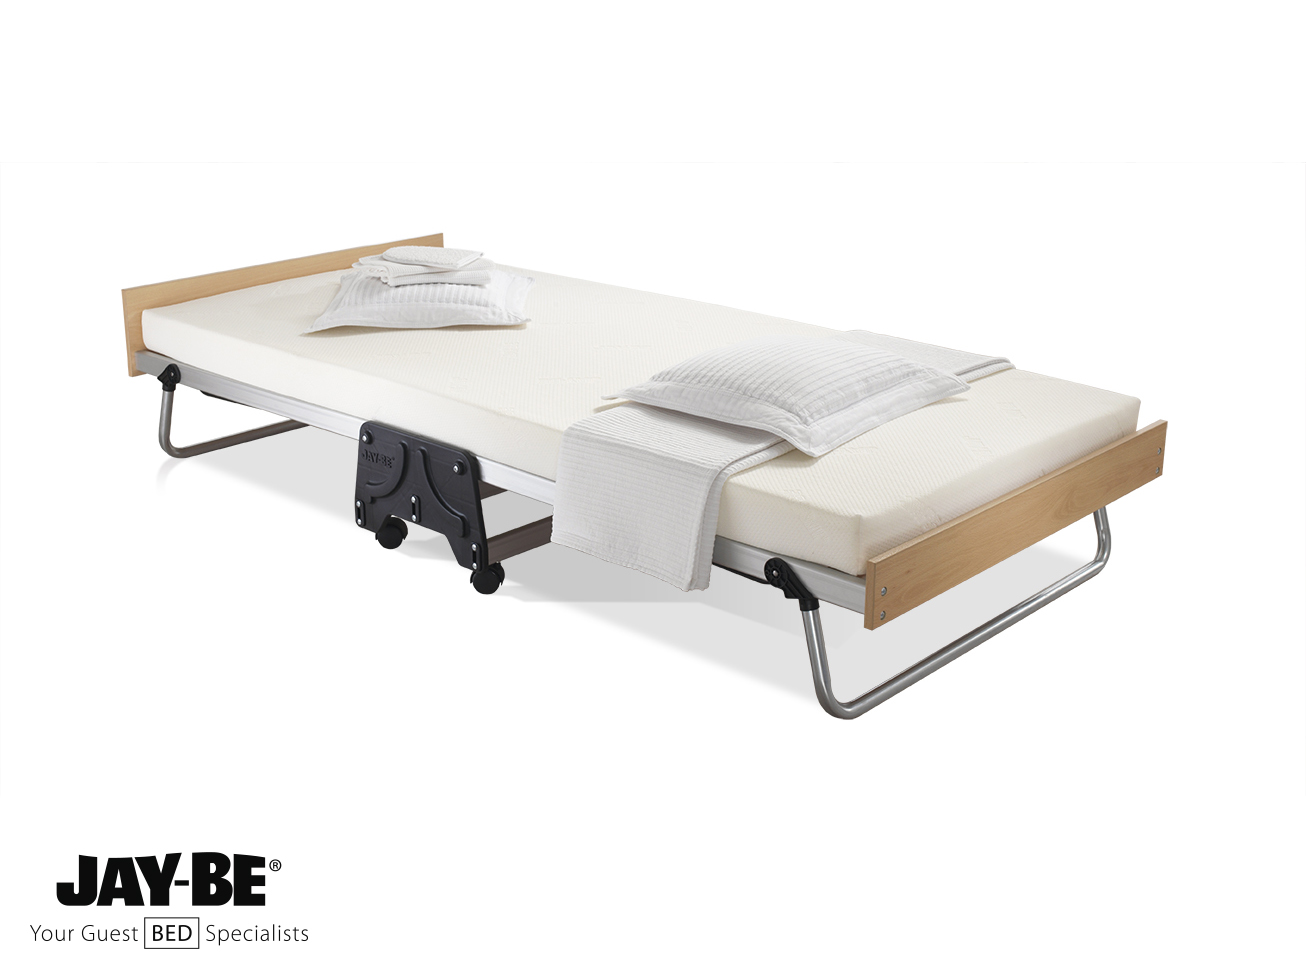 folding chair bed argos wedding covers in surrey guest beds jay be j memory foam single